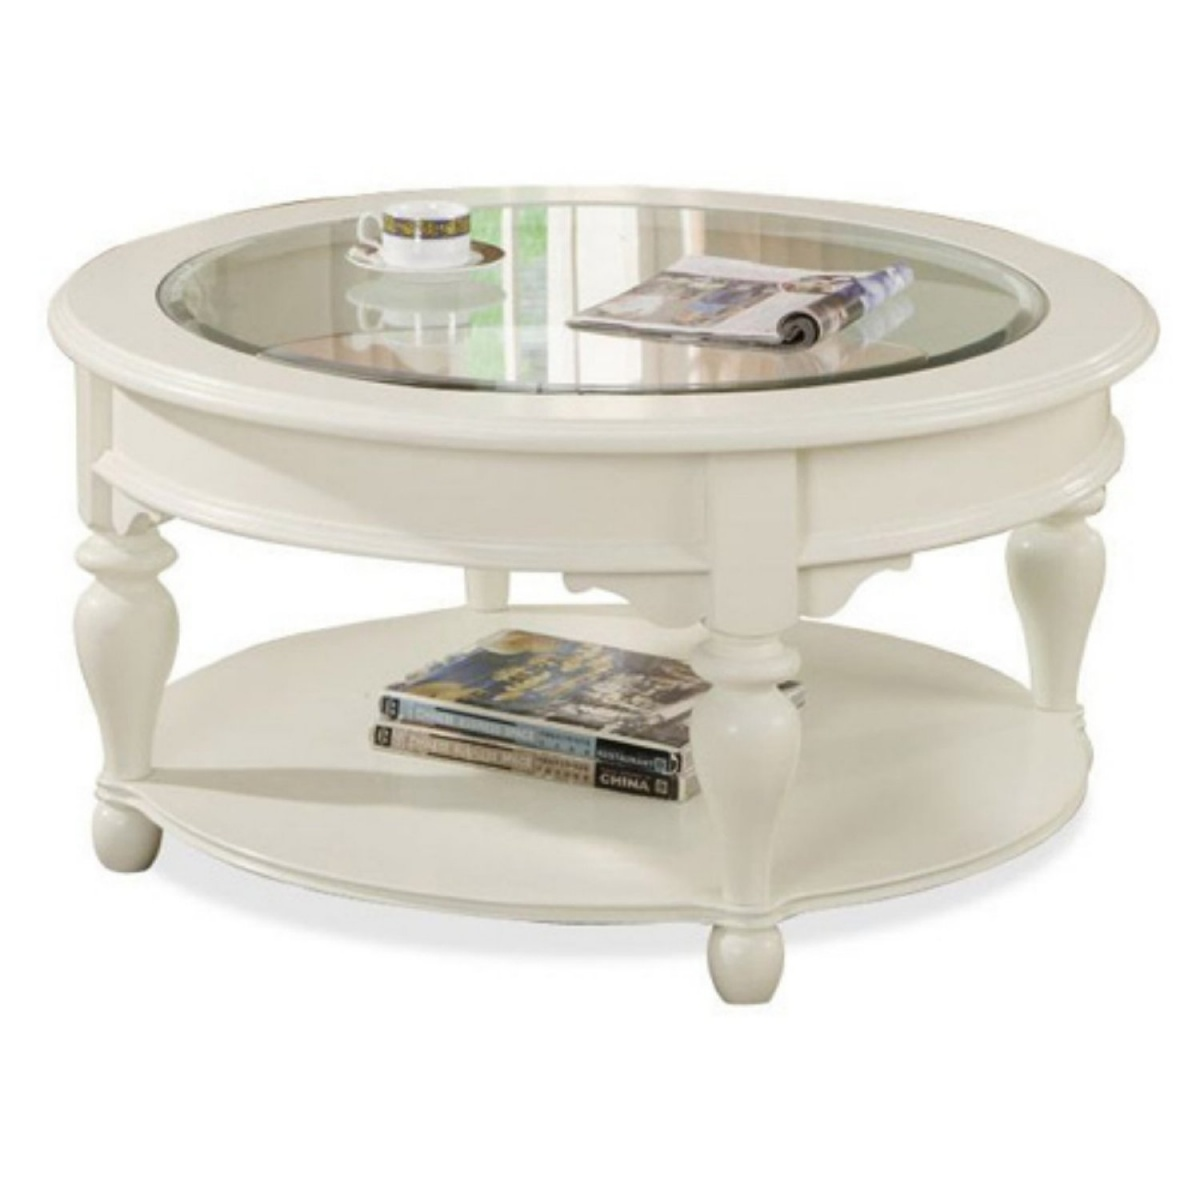 White Round Coffee Tables With Storage With Glass Top And Storage  Underneath For Storing Magazines And